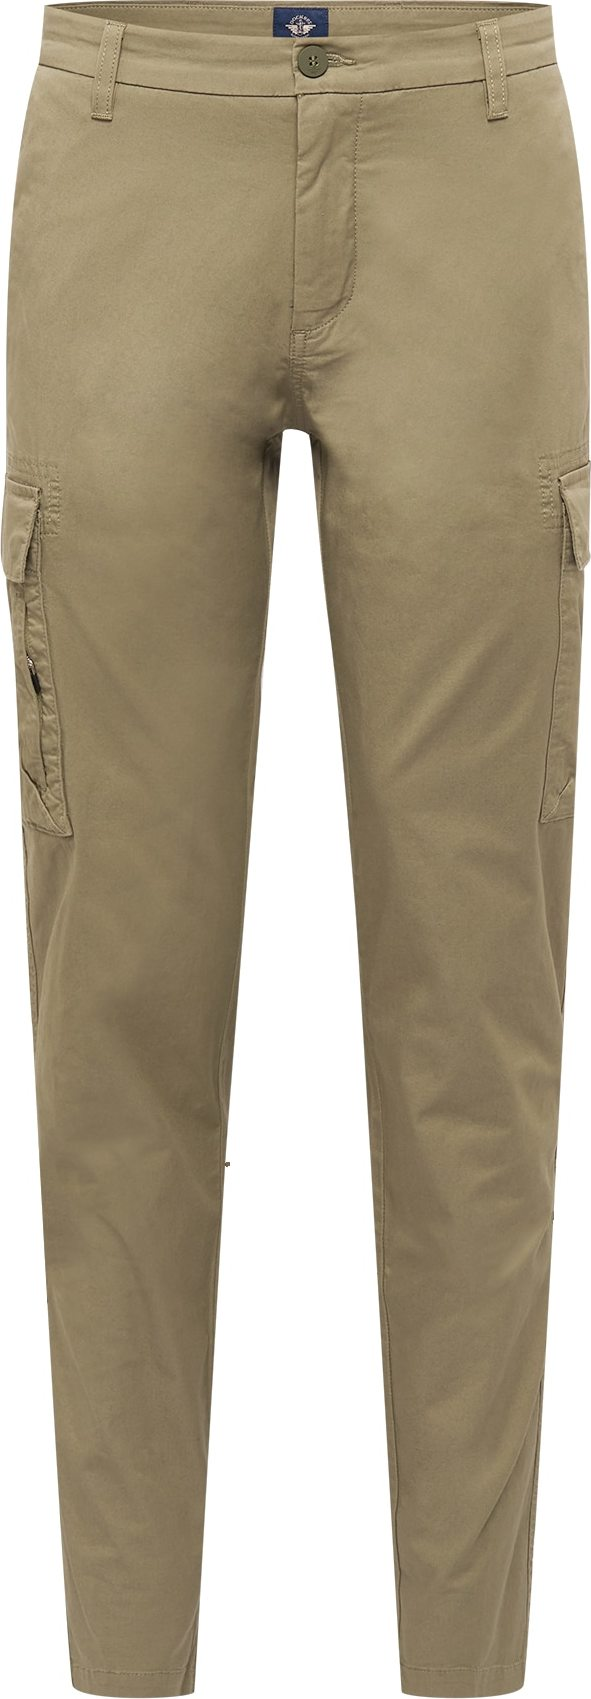 Dockers Kapsáče SMART 360 khaki DOCKERS